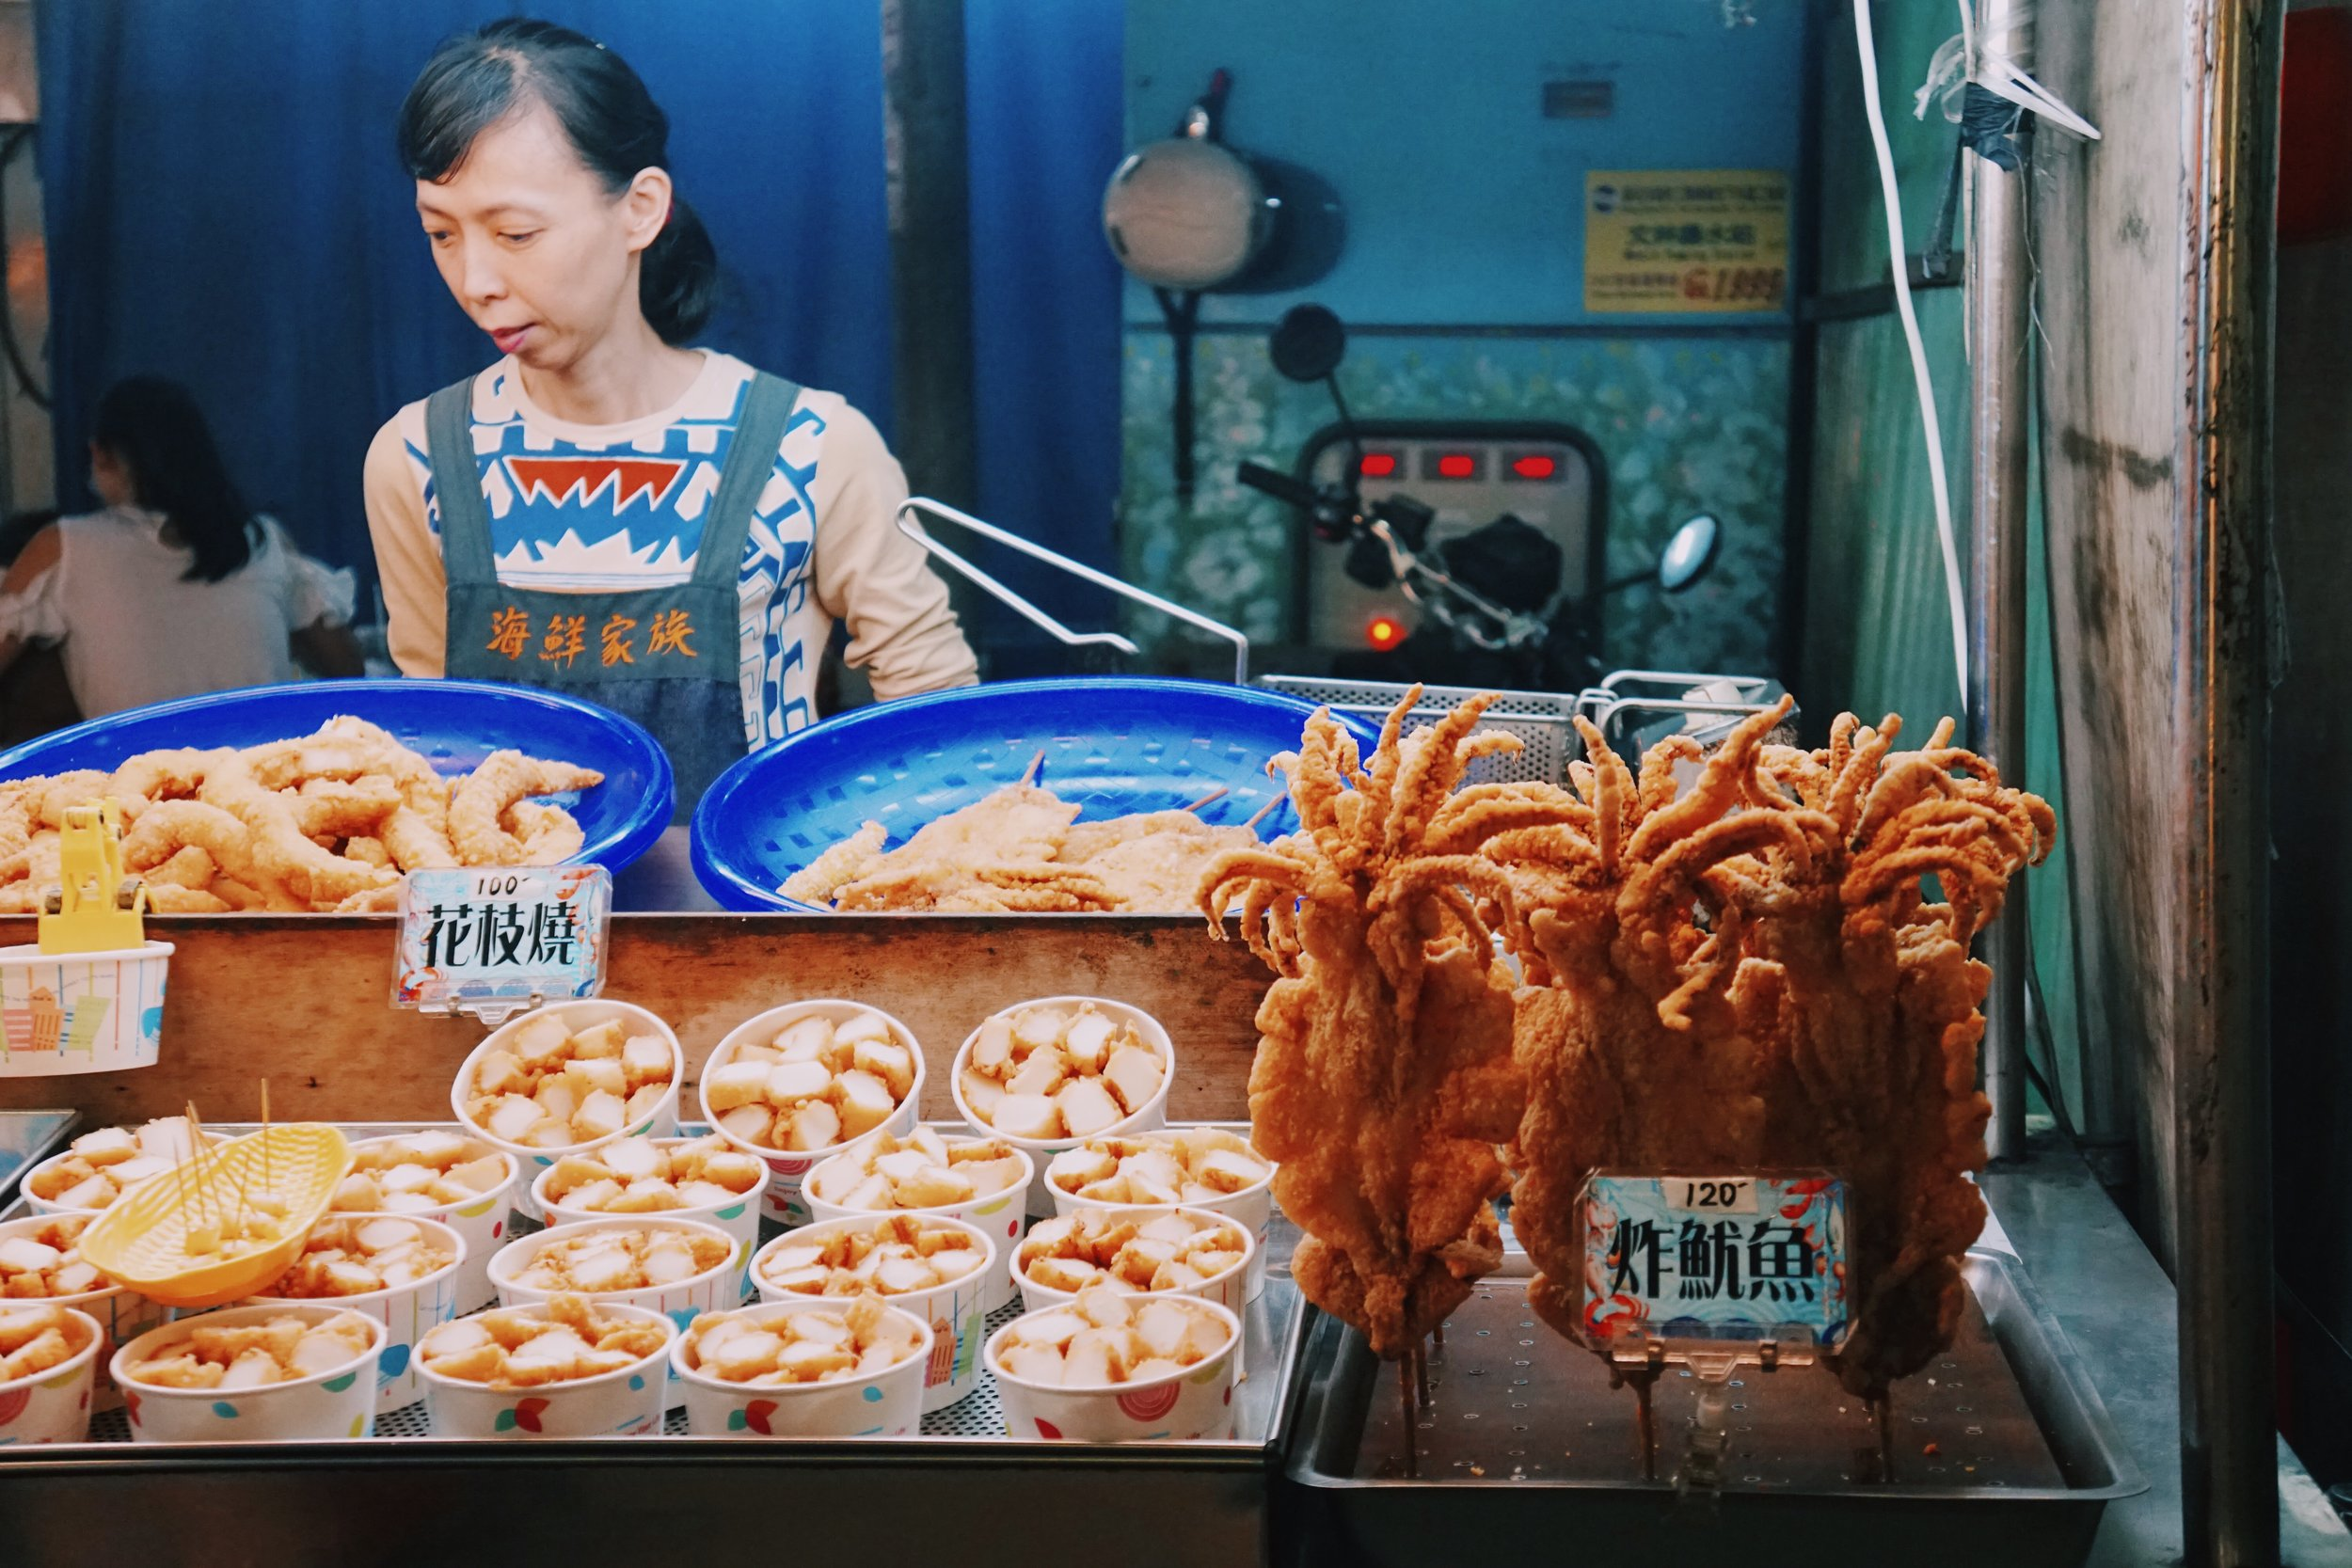 Taiwan - Street food, hiking, and culture